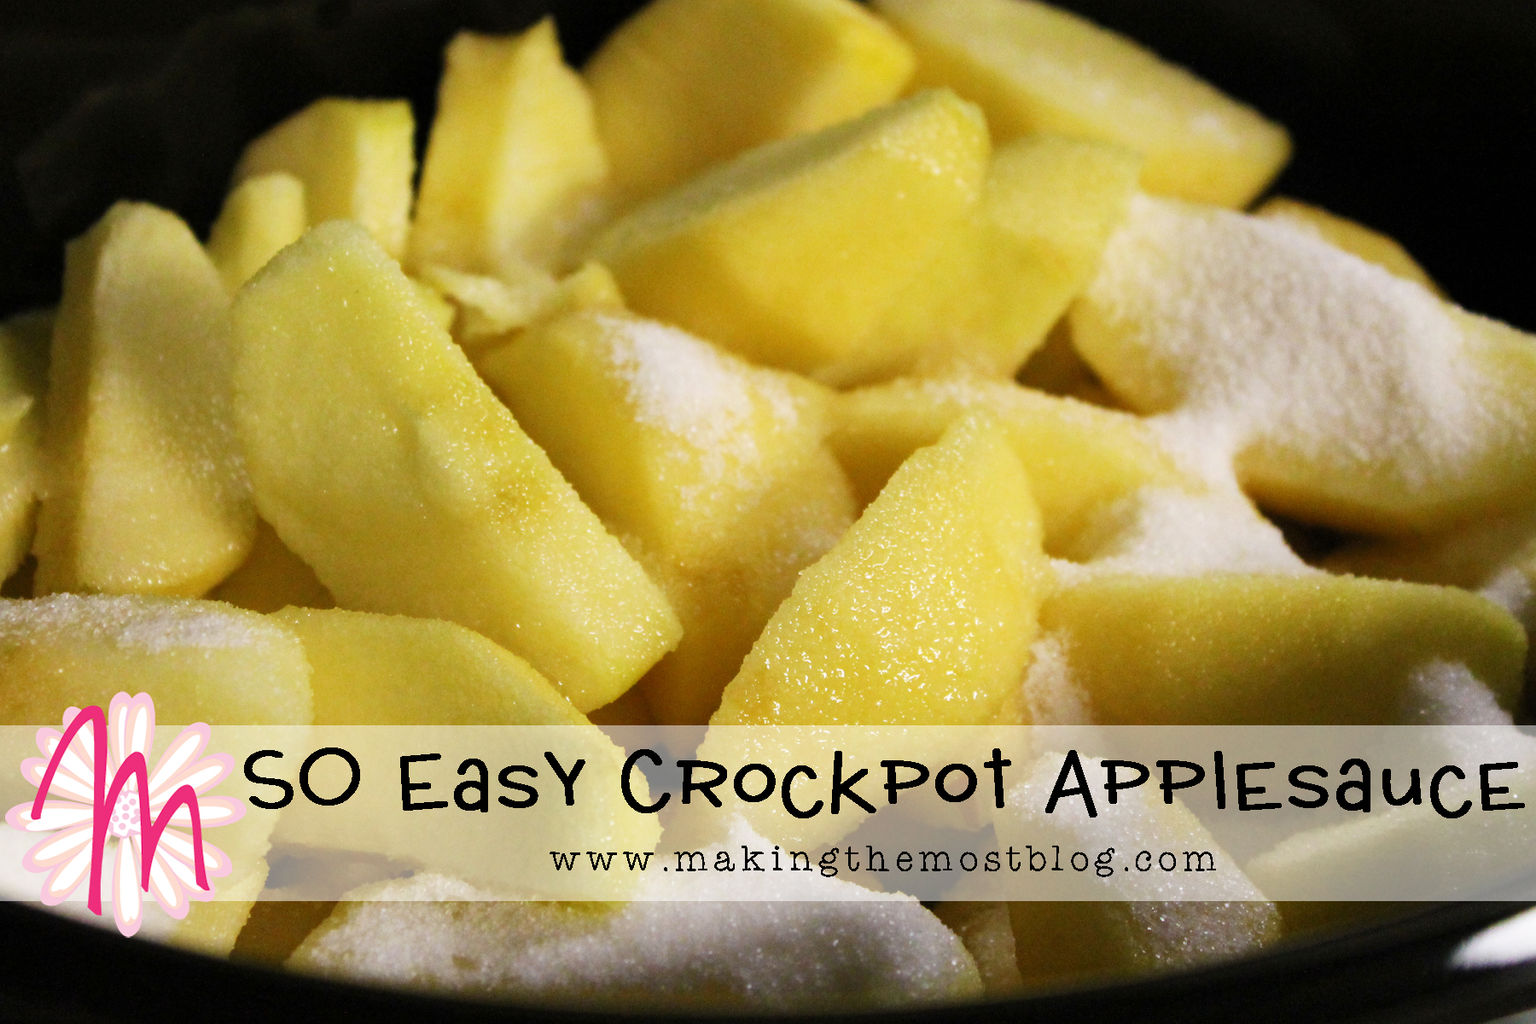 SO Easy Crockpot Applesauce | Making the Most Blog